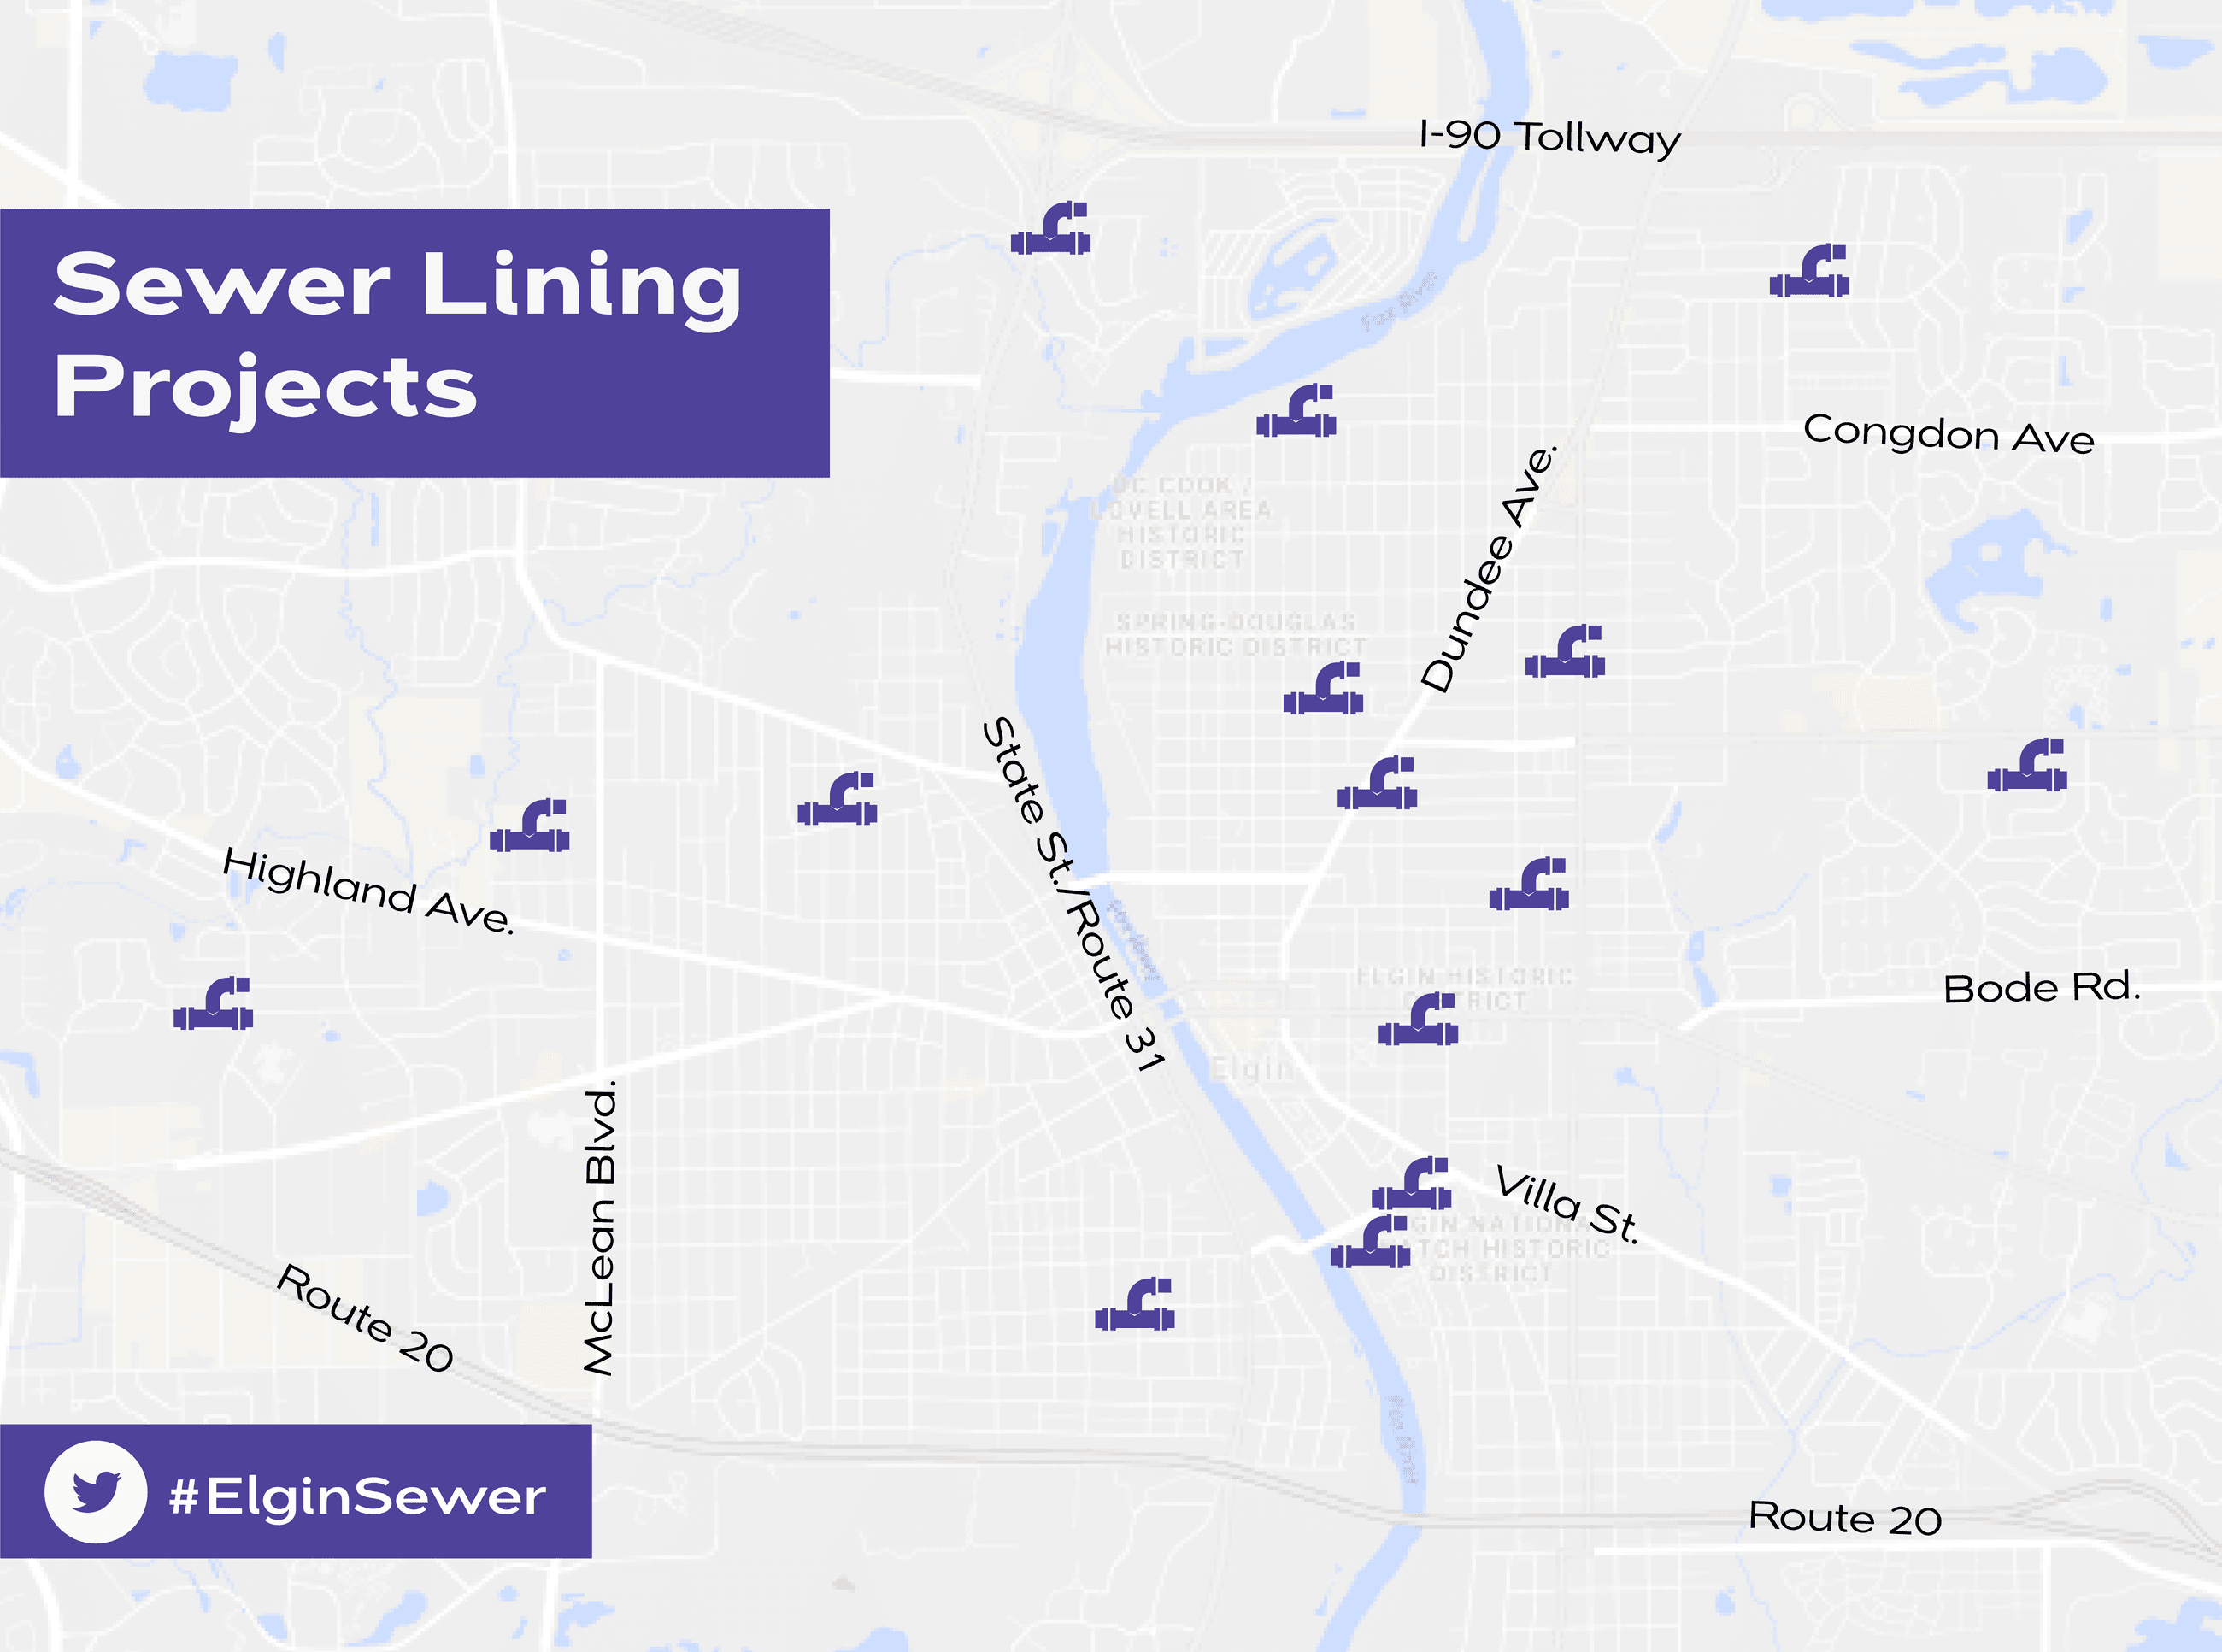 2018 Elgin Map with Sewer Lining project locations marked